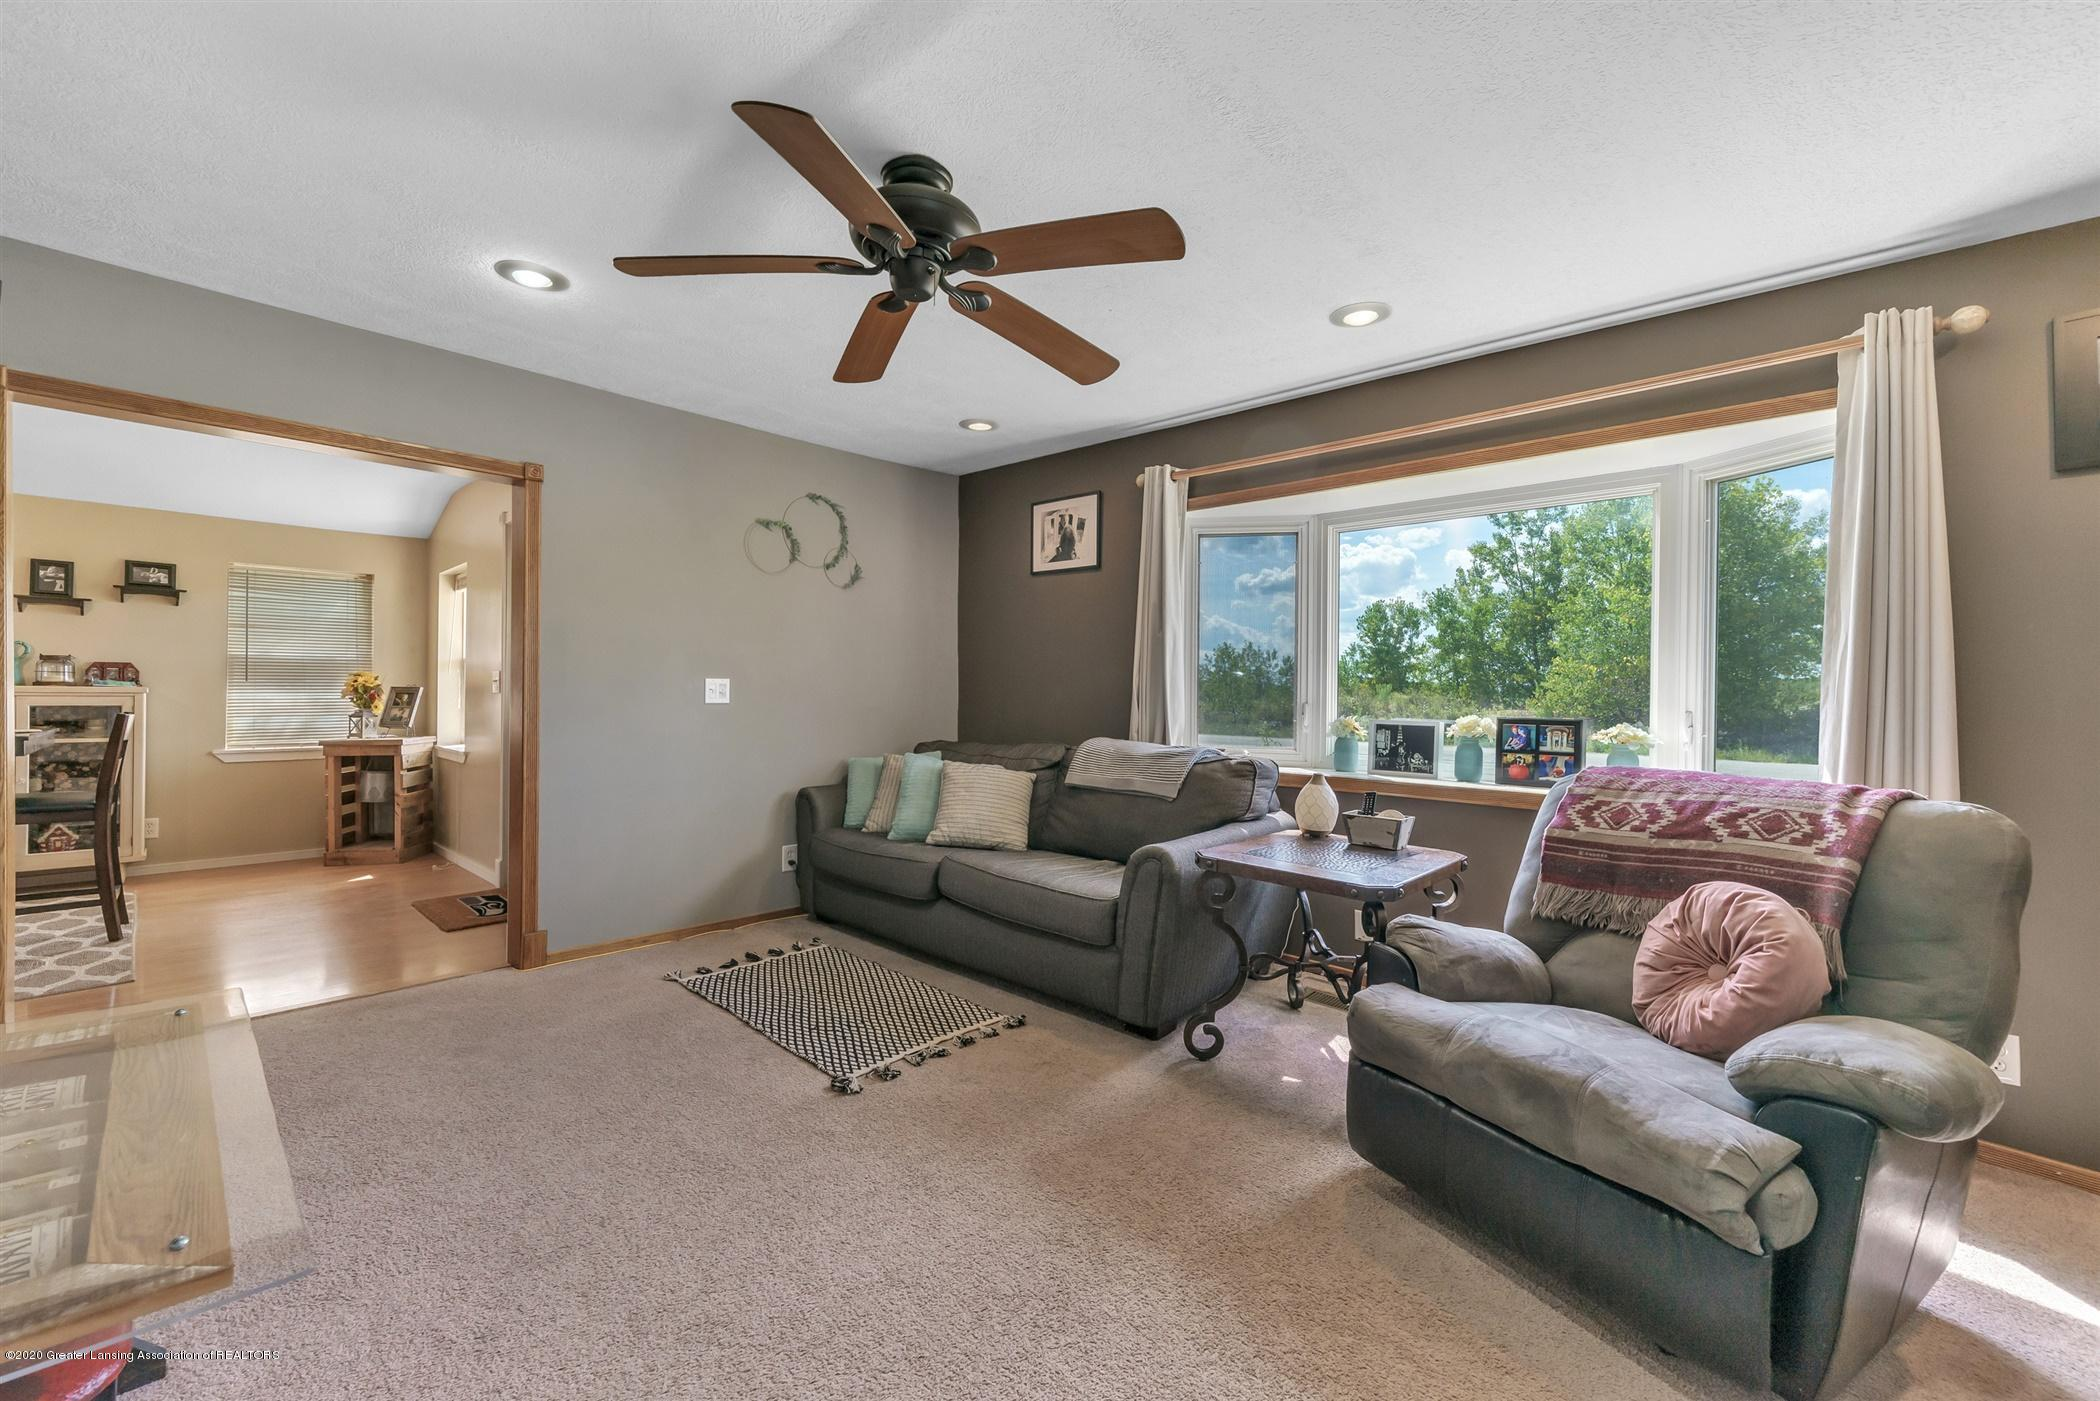 3690 N Chandler Rd - 10-3690 N Chandler-windowstill-real - 11